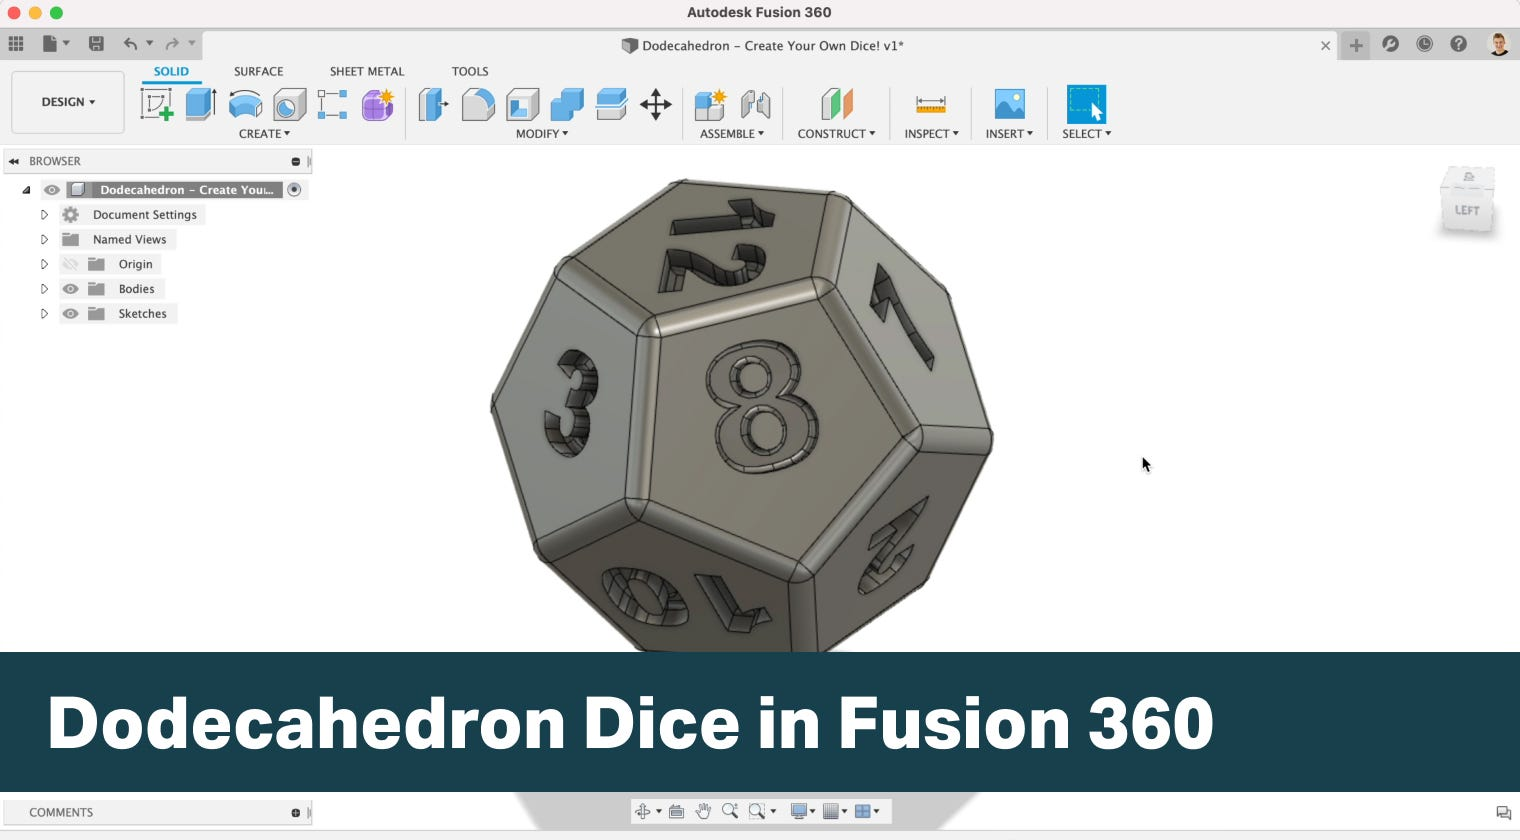 Dodecahedron Dice in Fusion 360 - Surface to Solid Techniques